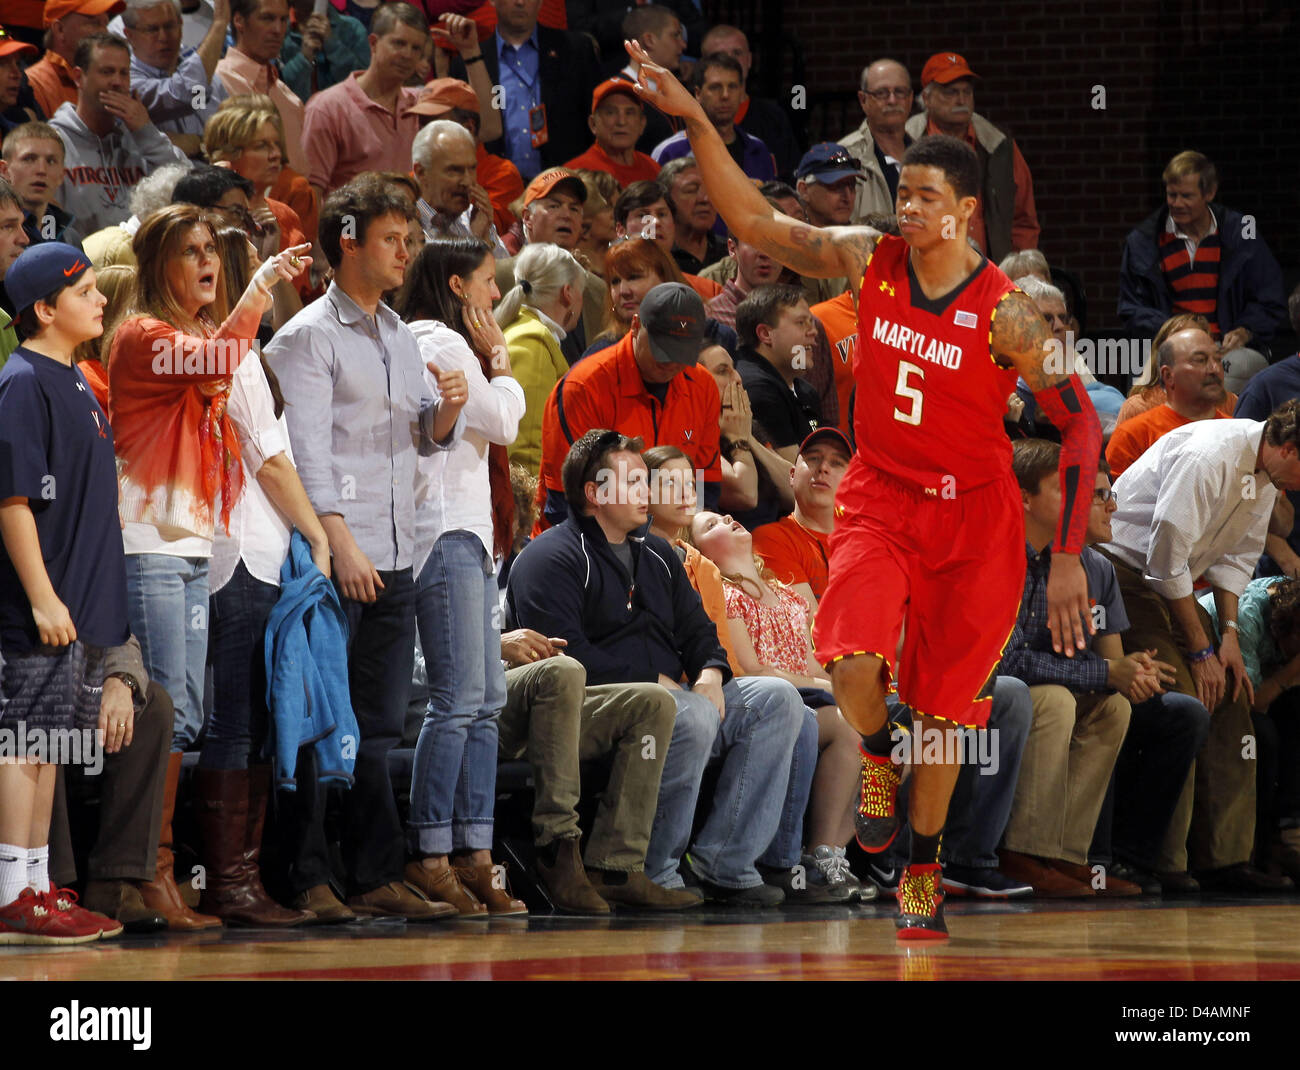 March 10, 2013 - Charlottesville, Virginia, USA - Maryland guard Nick Faust (5) reacts to a play during the game - Stock Image